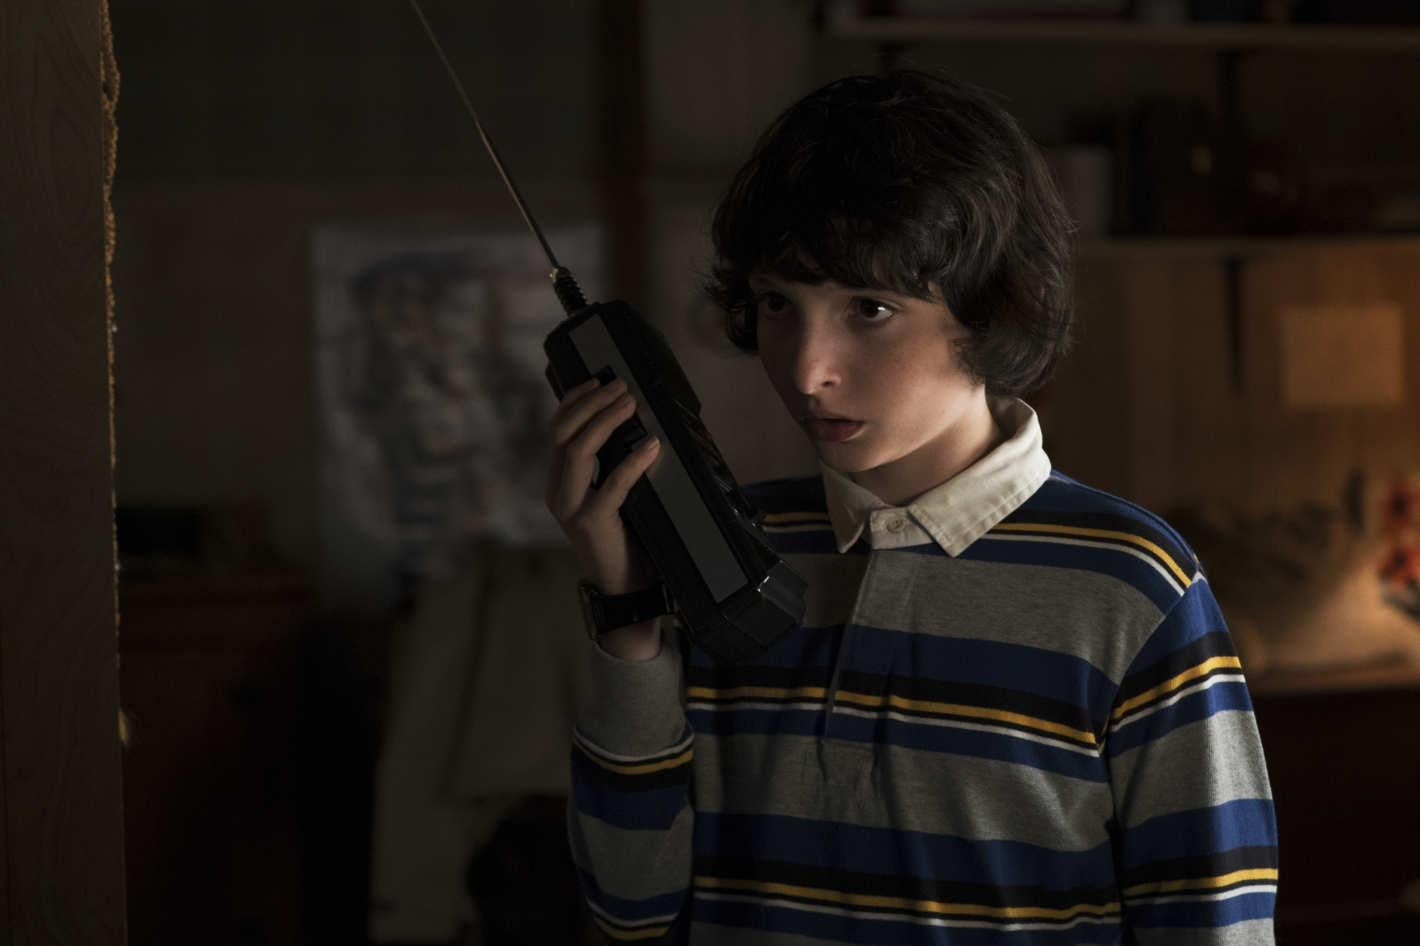 How Old Is The Black Kid In Stranger Things